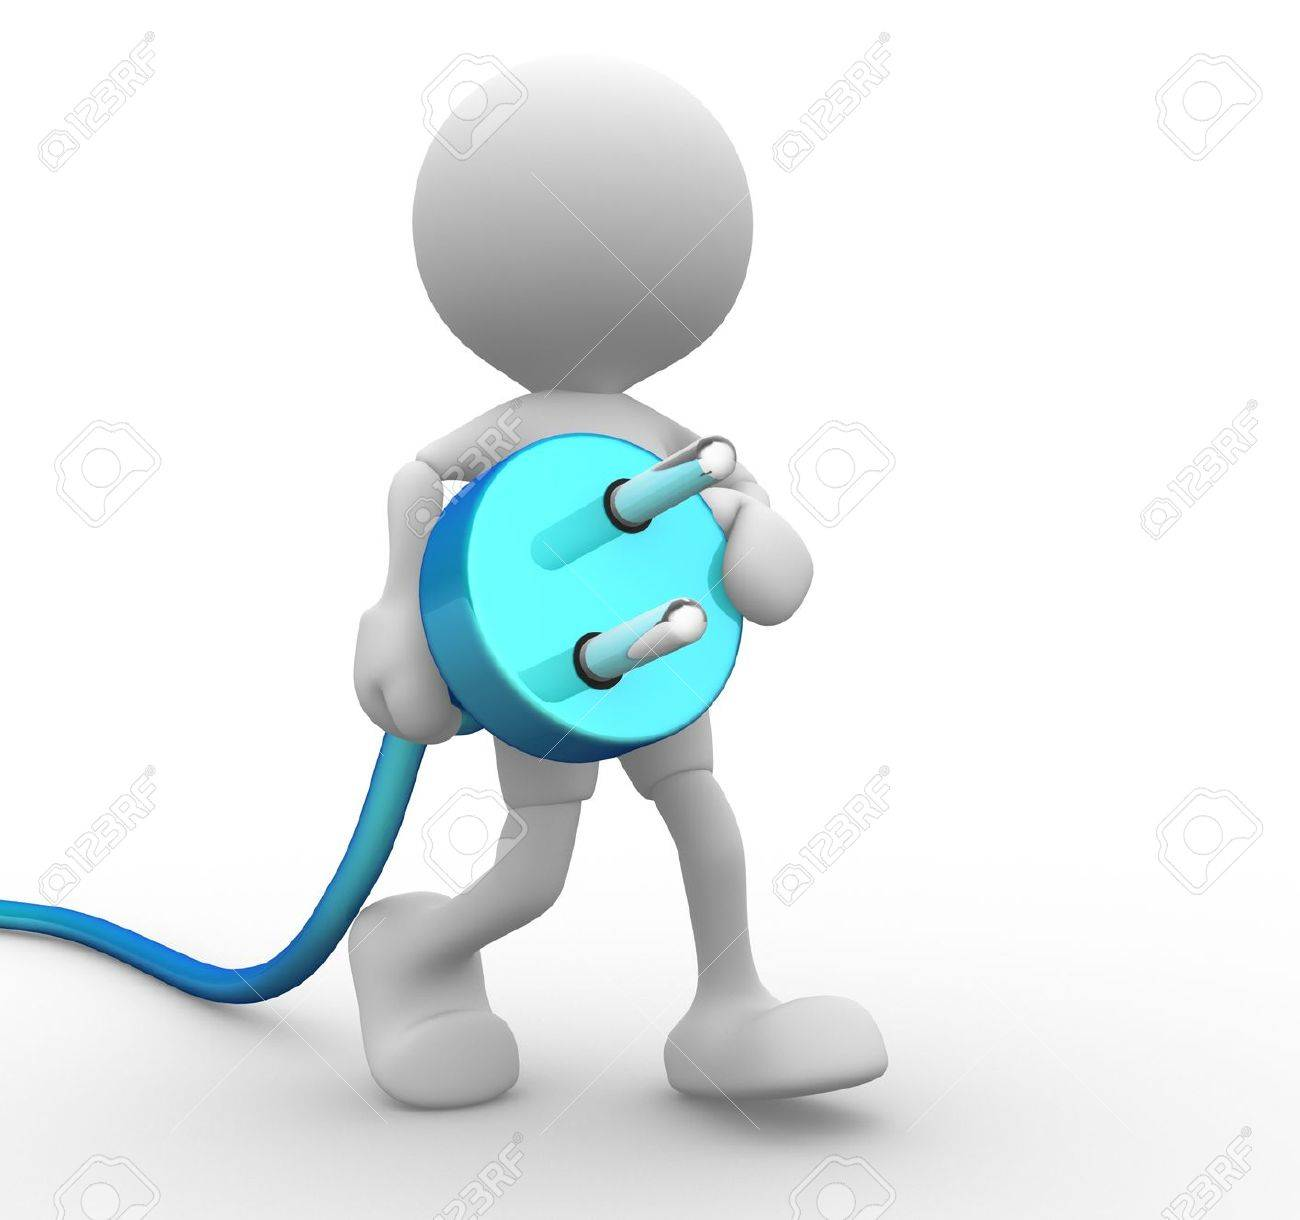 3d people - man, person carrying in his hand an electric plug. Stock Photo - 14869121